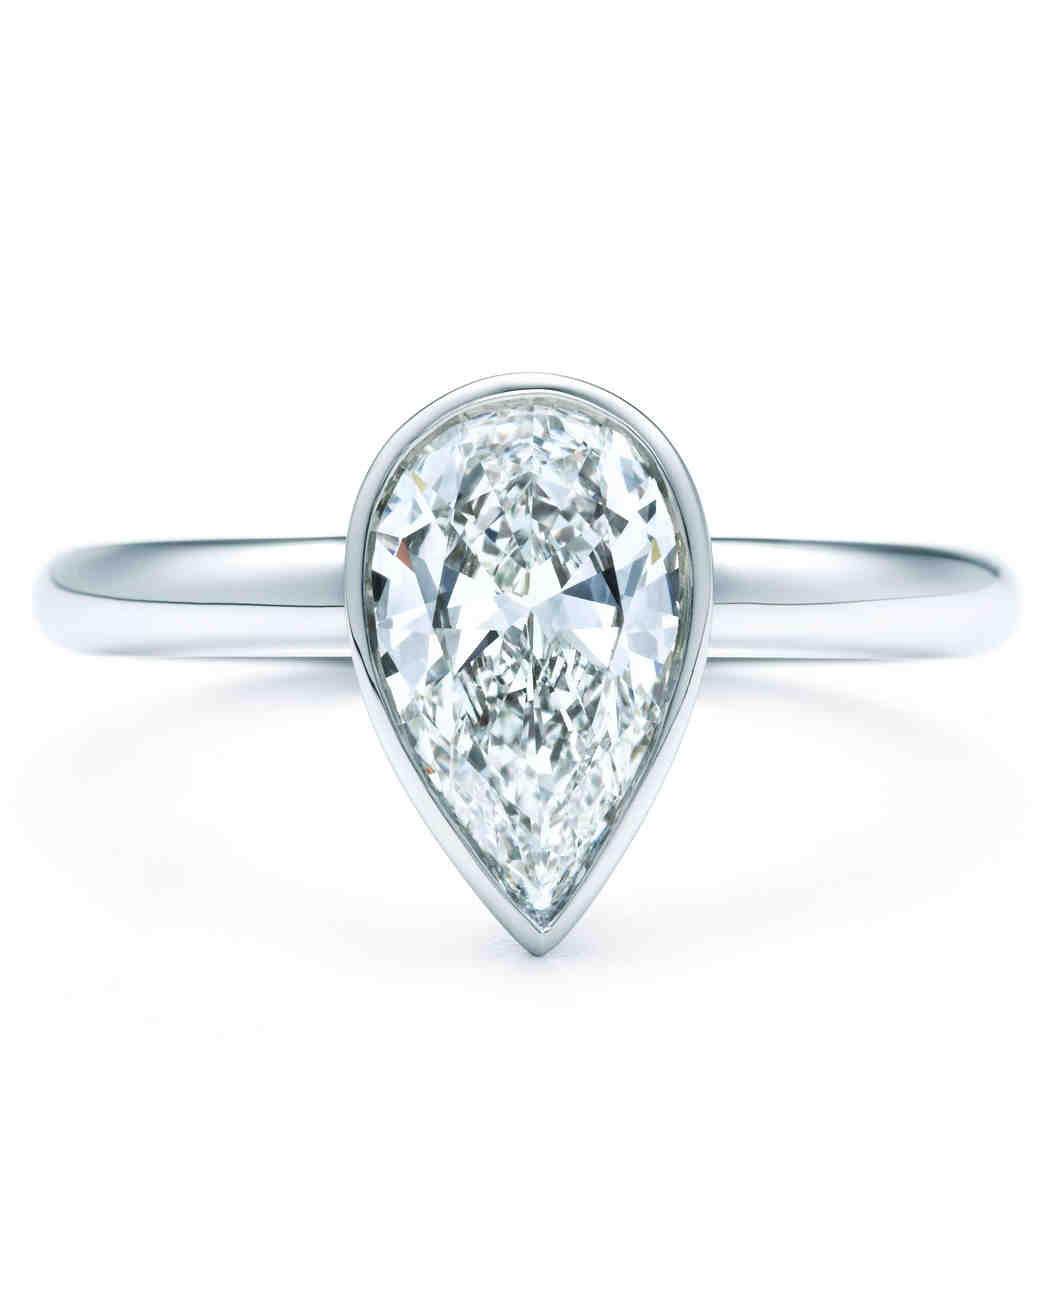 over rings ring wedding sterling silver p gold shaped white plated zirconia pear cubic diamond